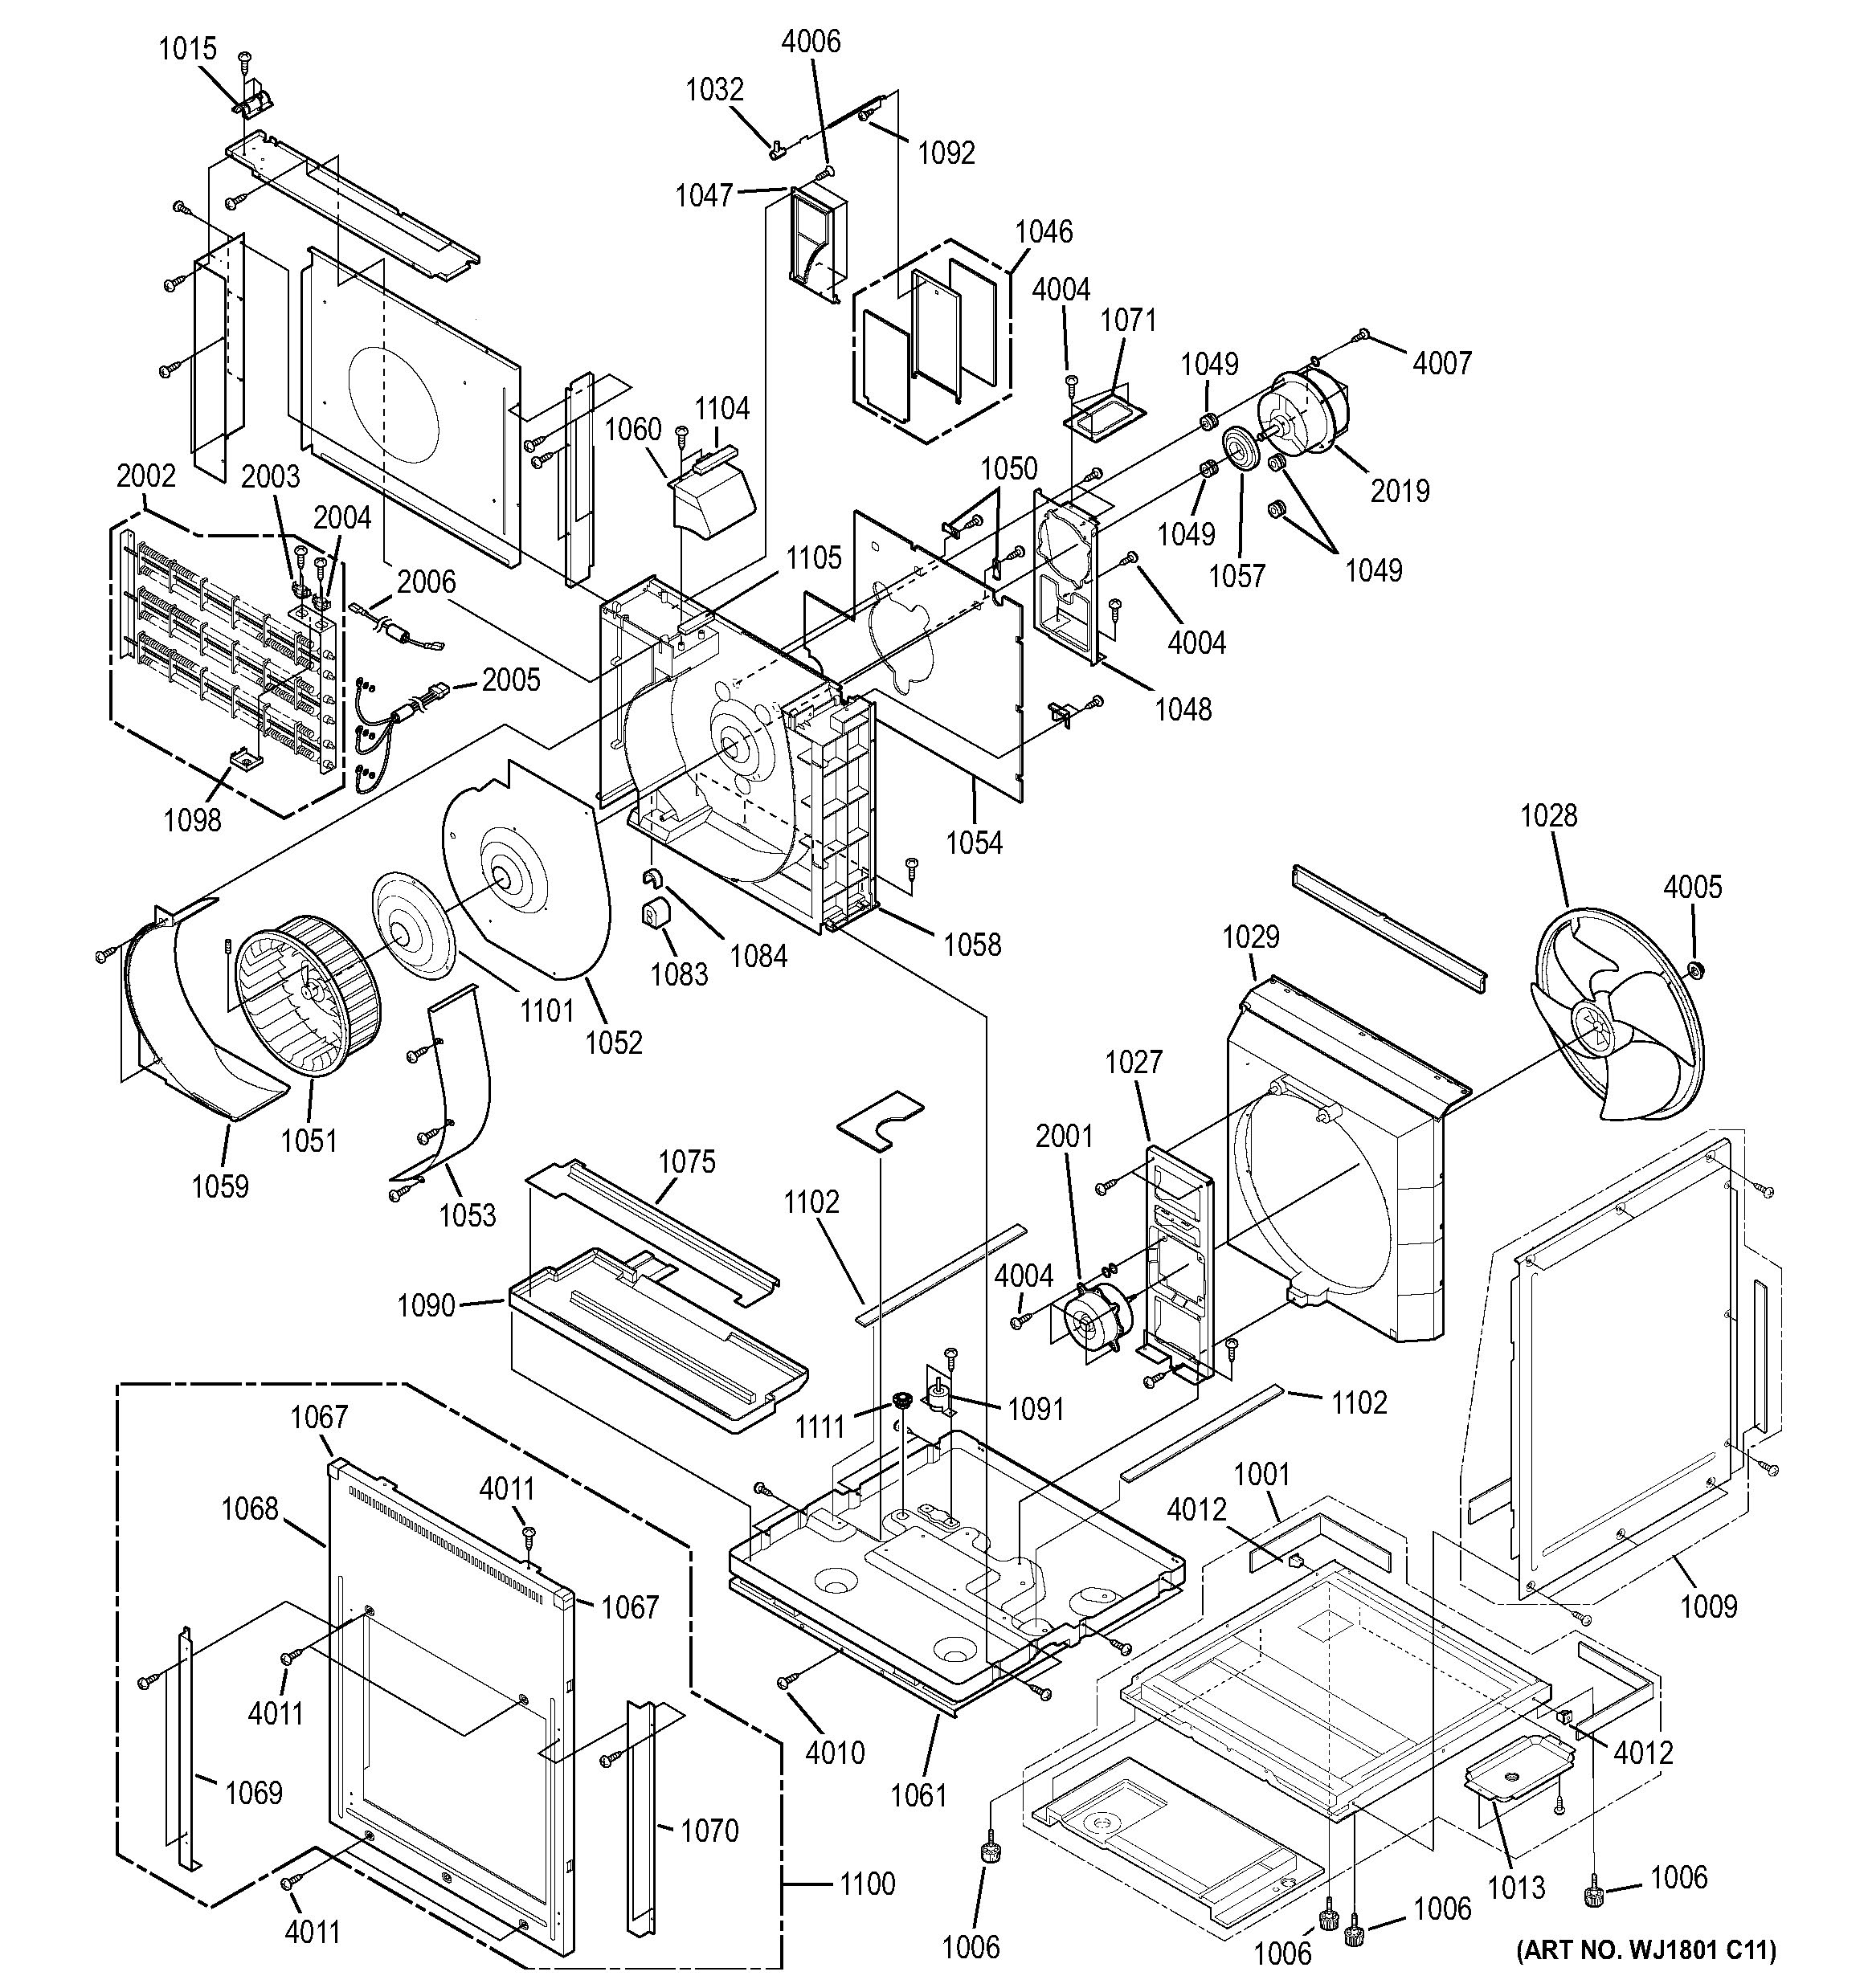 Assembly View for MOTOR, HEATER & BASE PAN PARTS